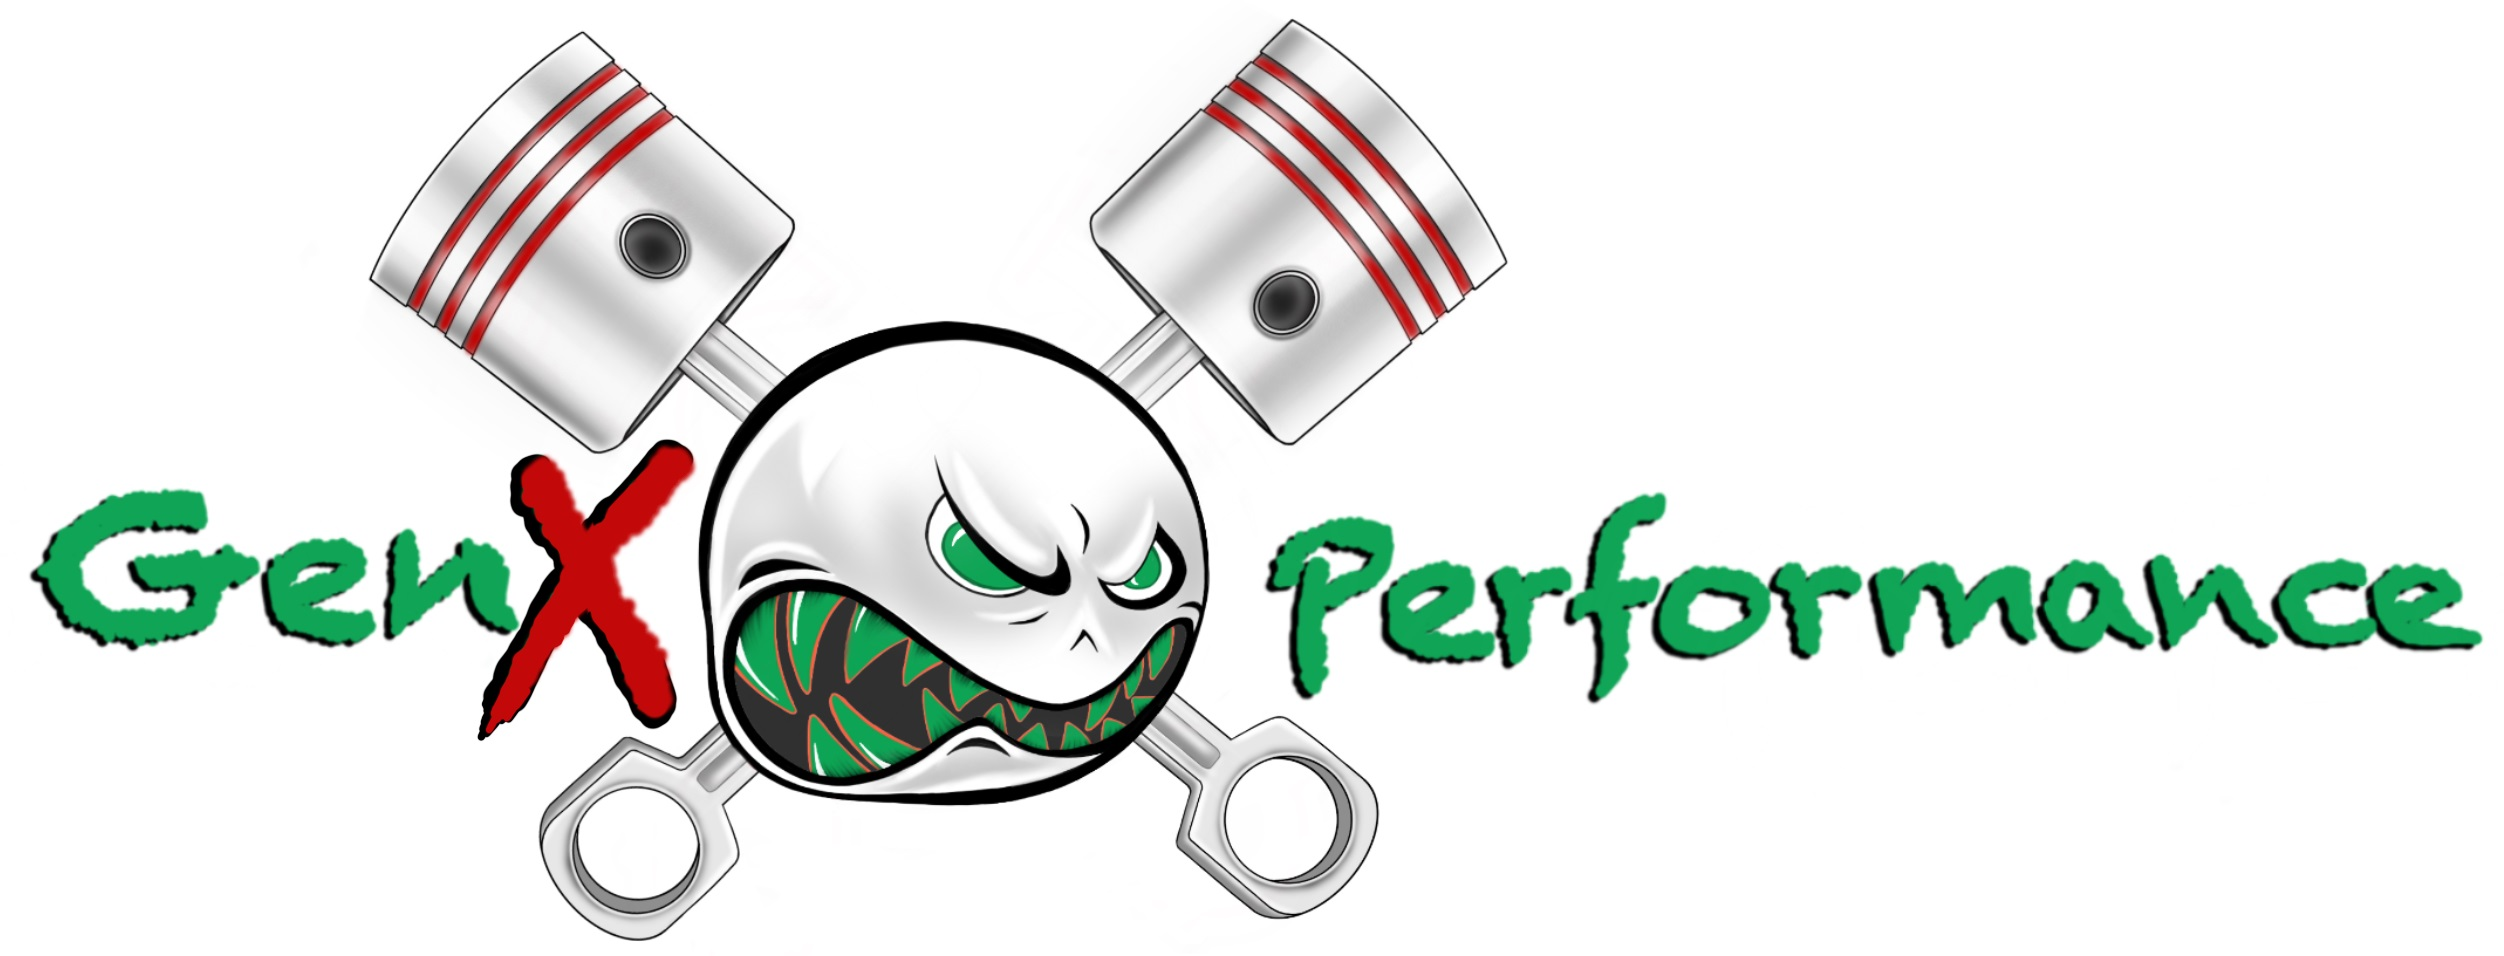 genx-performance-logo-final-2-.jpg